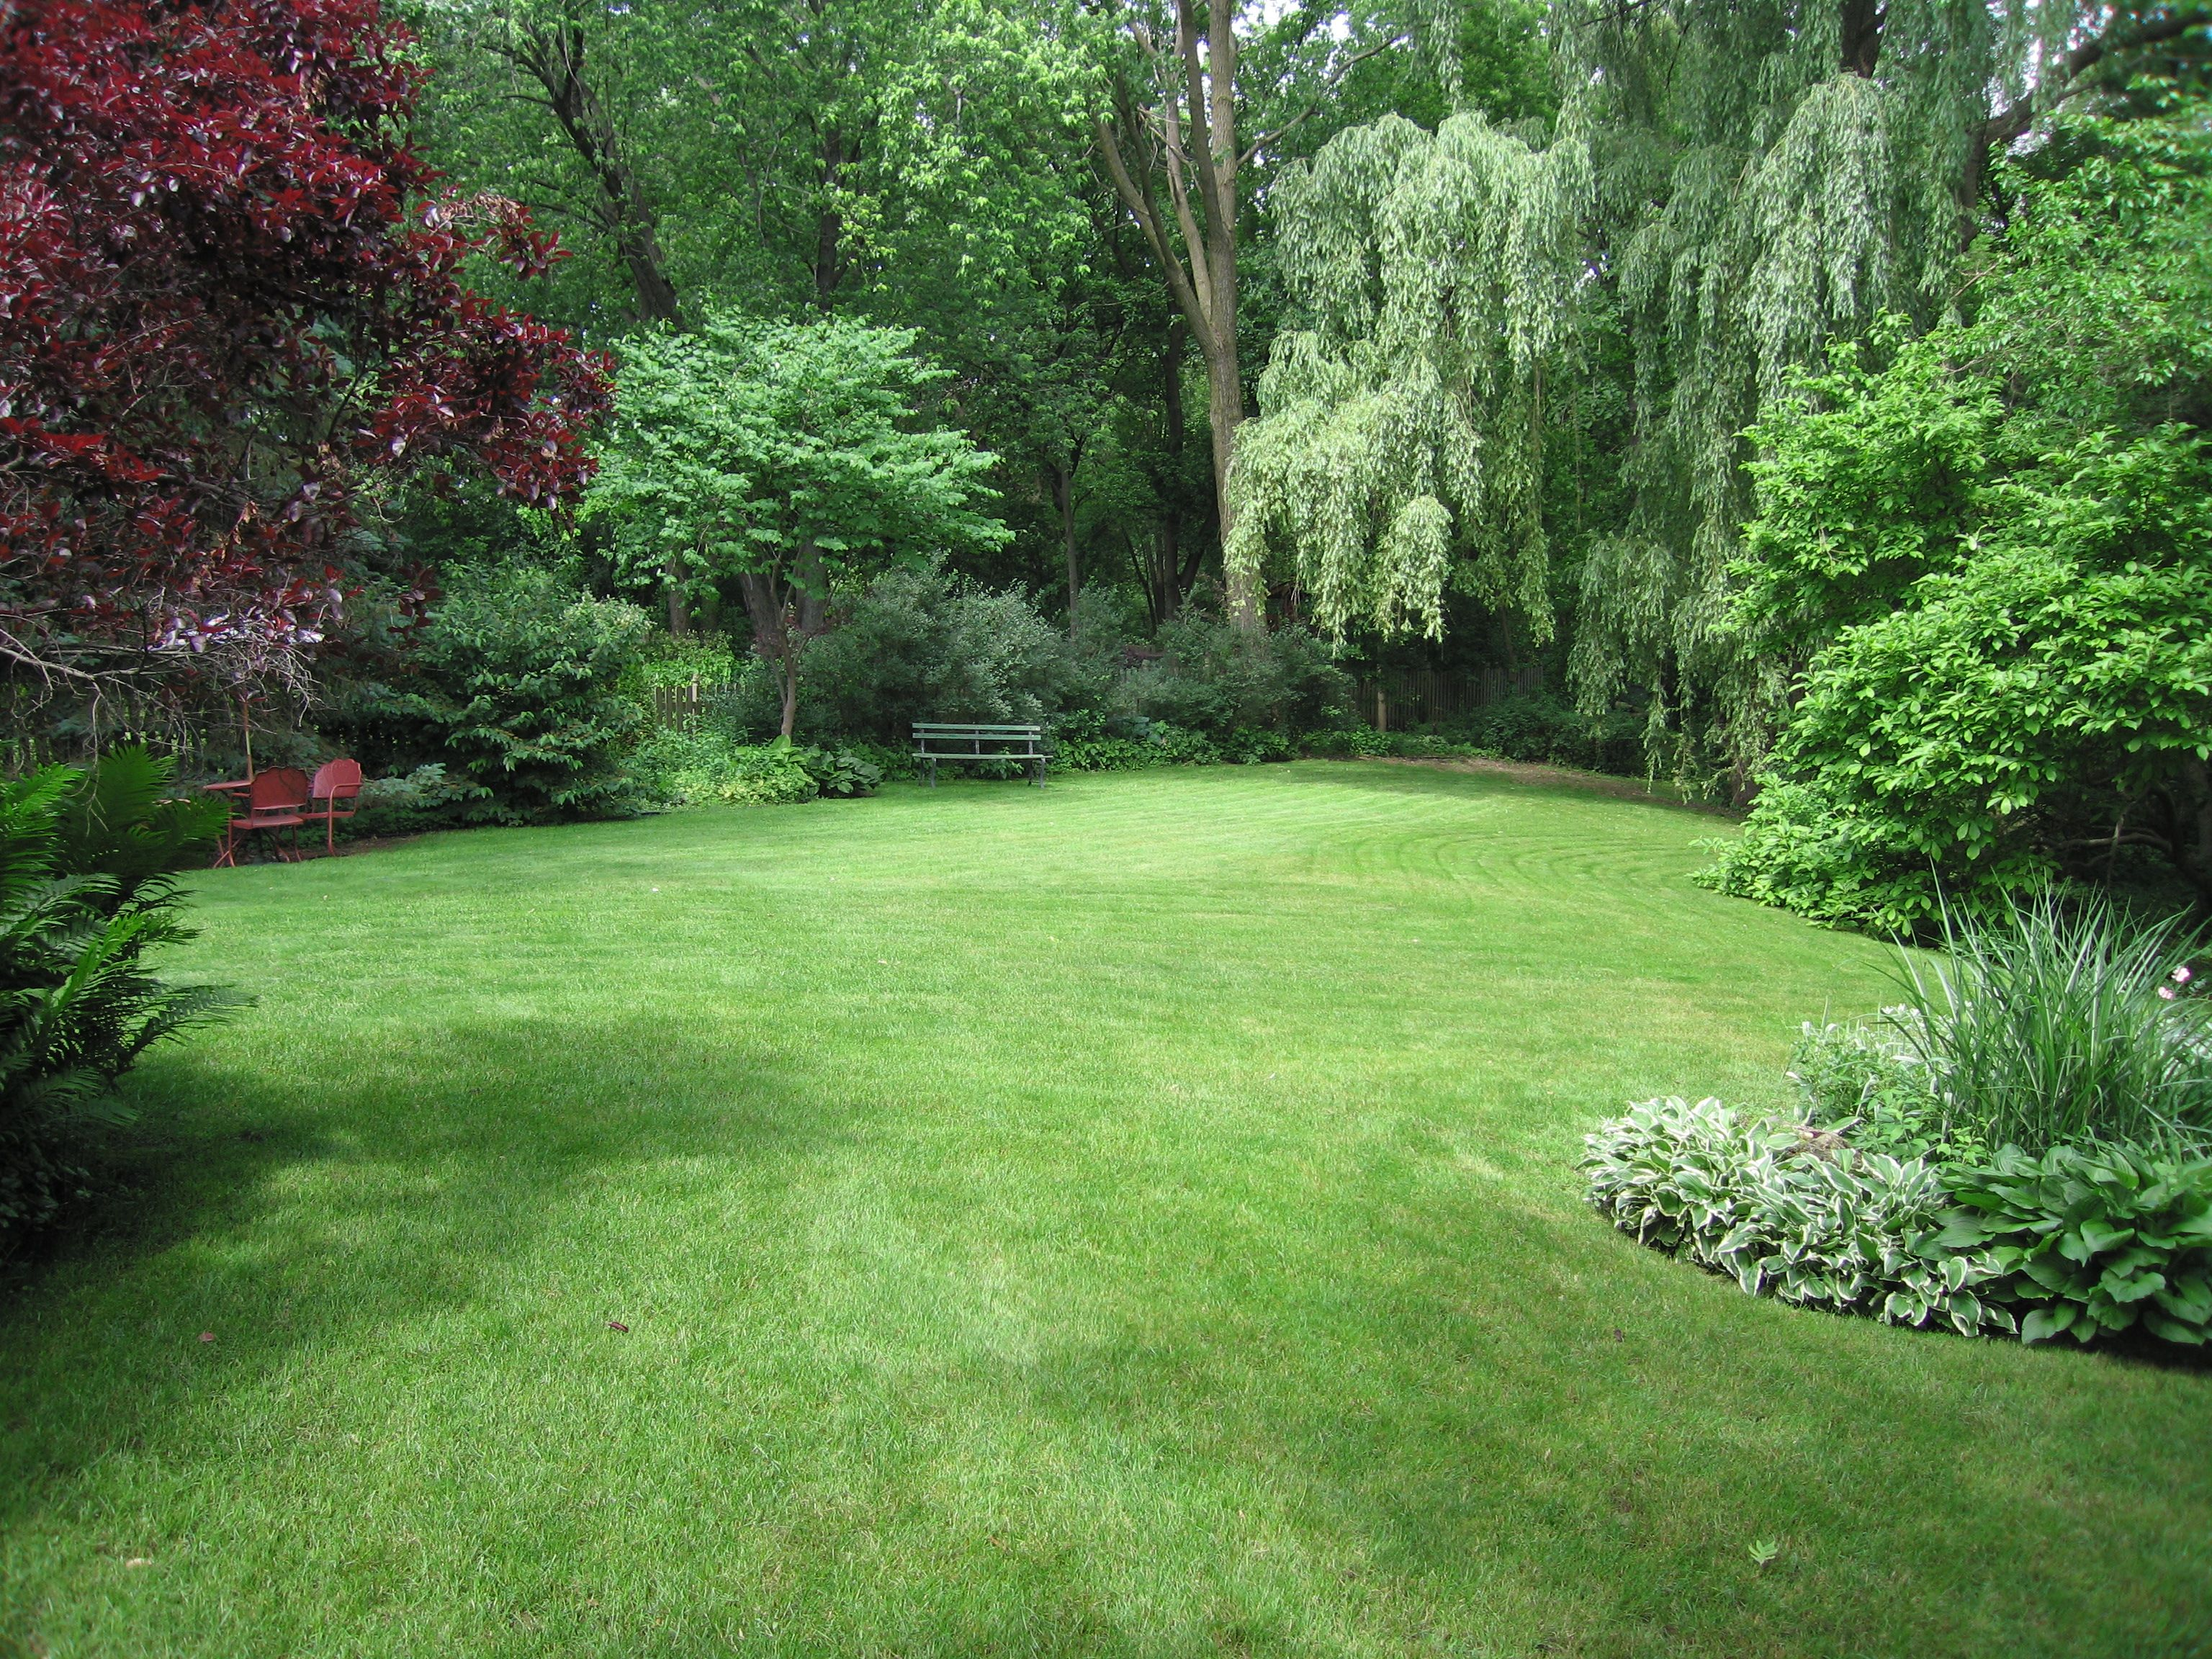 Our Yard Has An Amazing Open Grass Space Surrounded By The